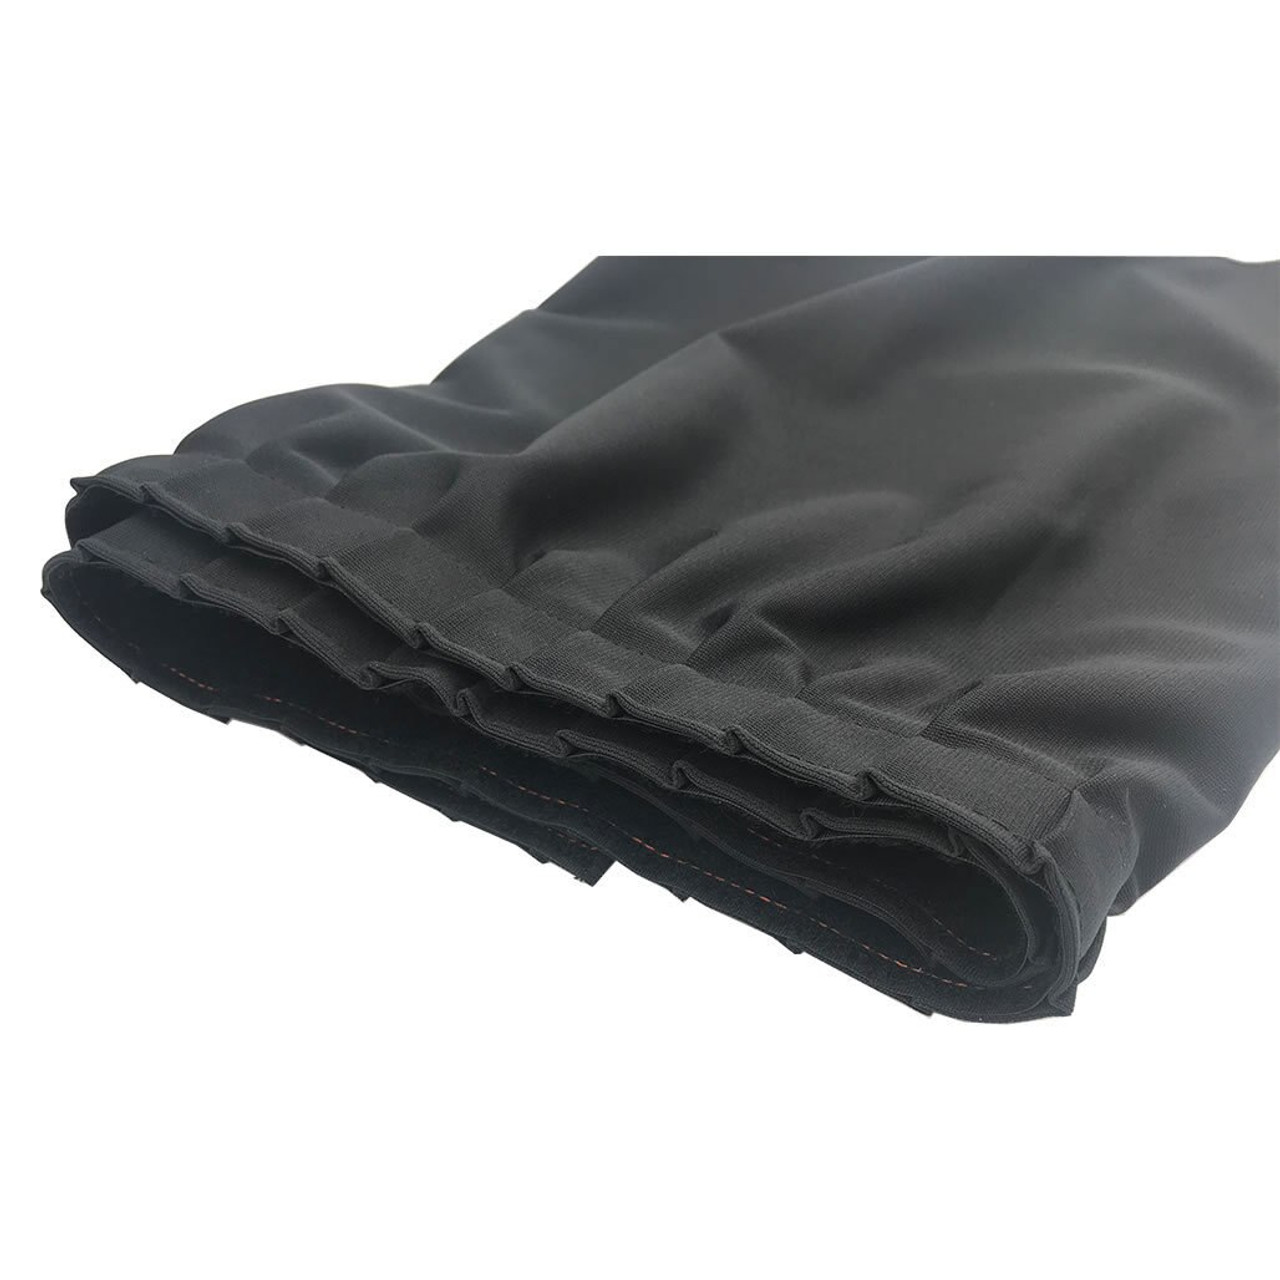 8 Inches High Best Value Black Expo Pleat Polyester Stage Skirting with Velcro. FR Rated. - Close up of Expo/Mini-Accordion Pleat.